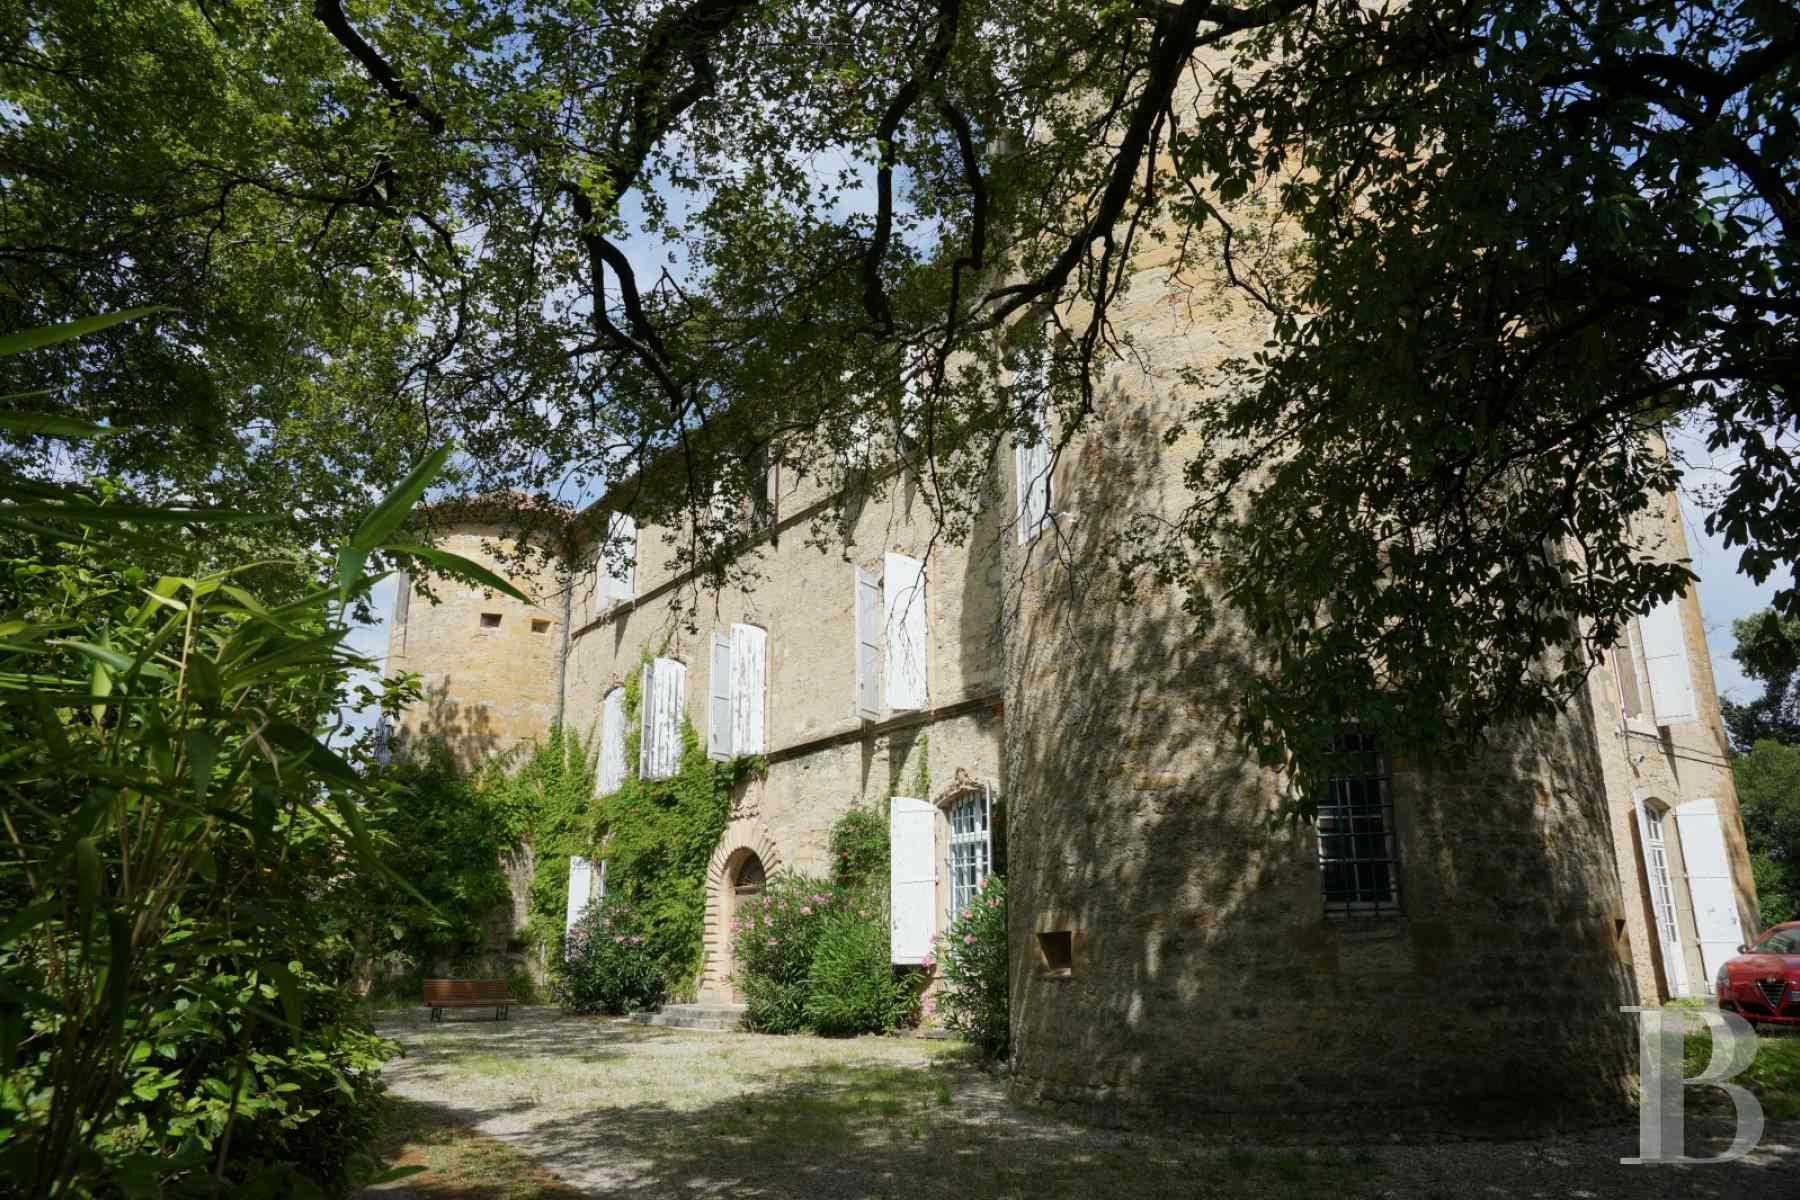 chateaux for sale France languedoc roussillon 17th century - 1 zoom